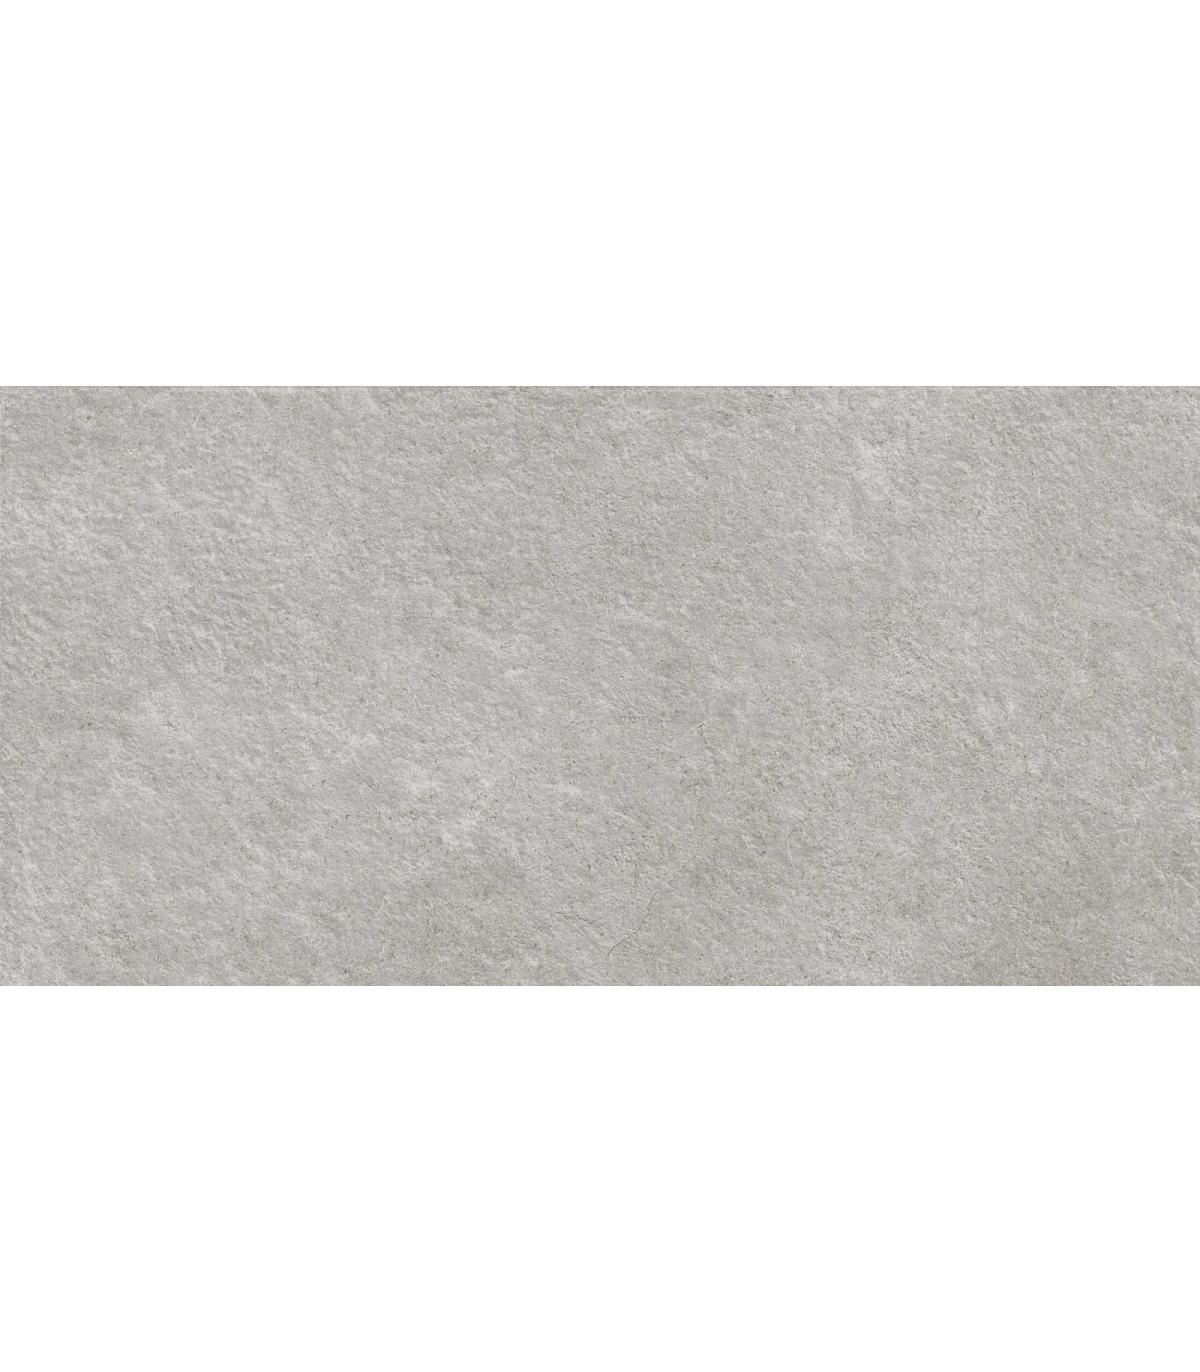 Complete Hand Shower Without Water Inlet Grohe Collection Sena